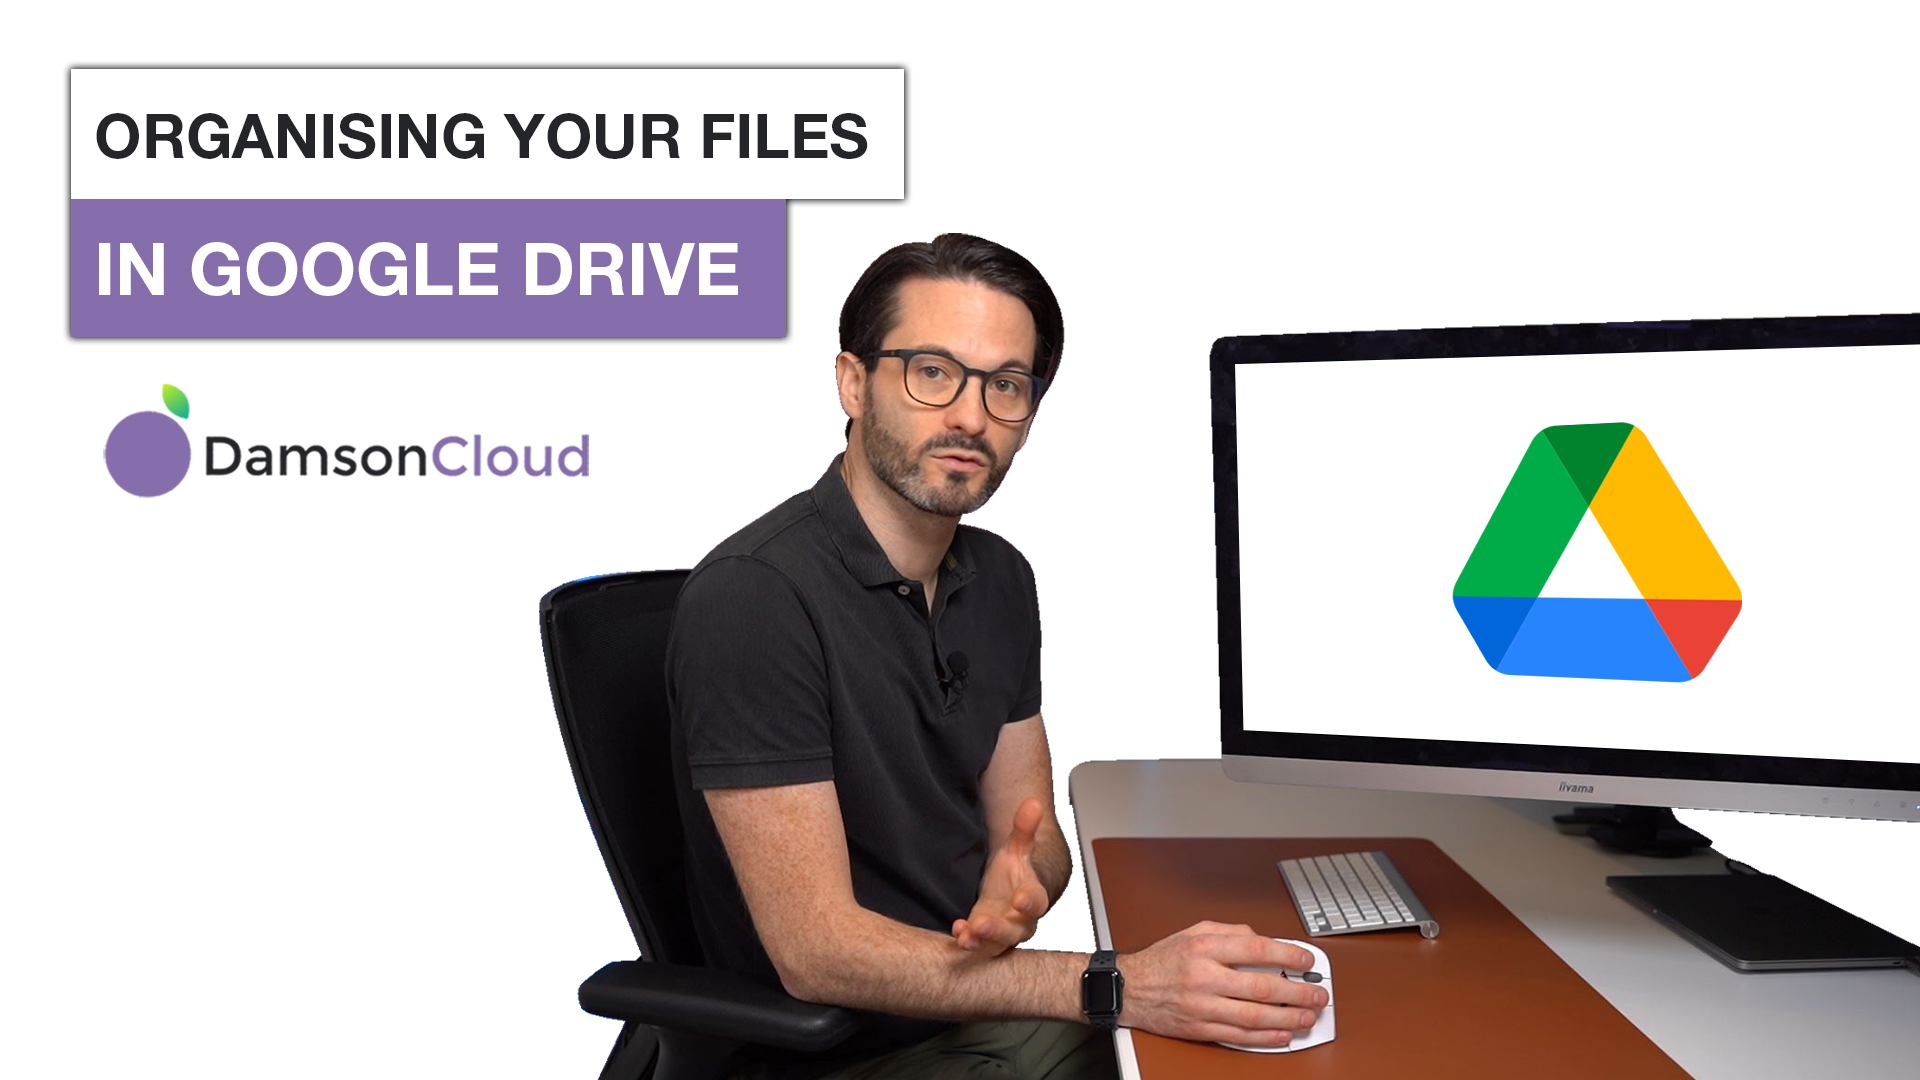 Fintan Murphy from Damson Cloud shows us the most efficient ways to organise your folders within Google Drive.